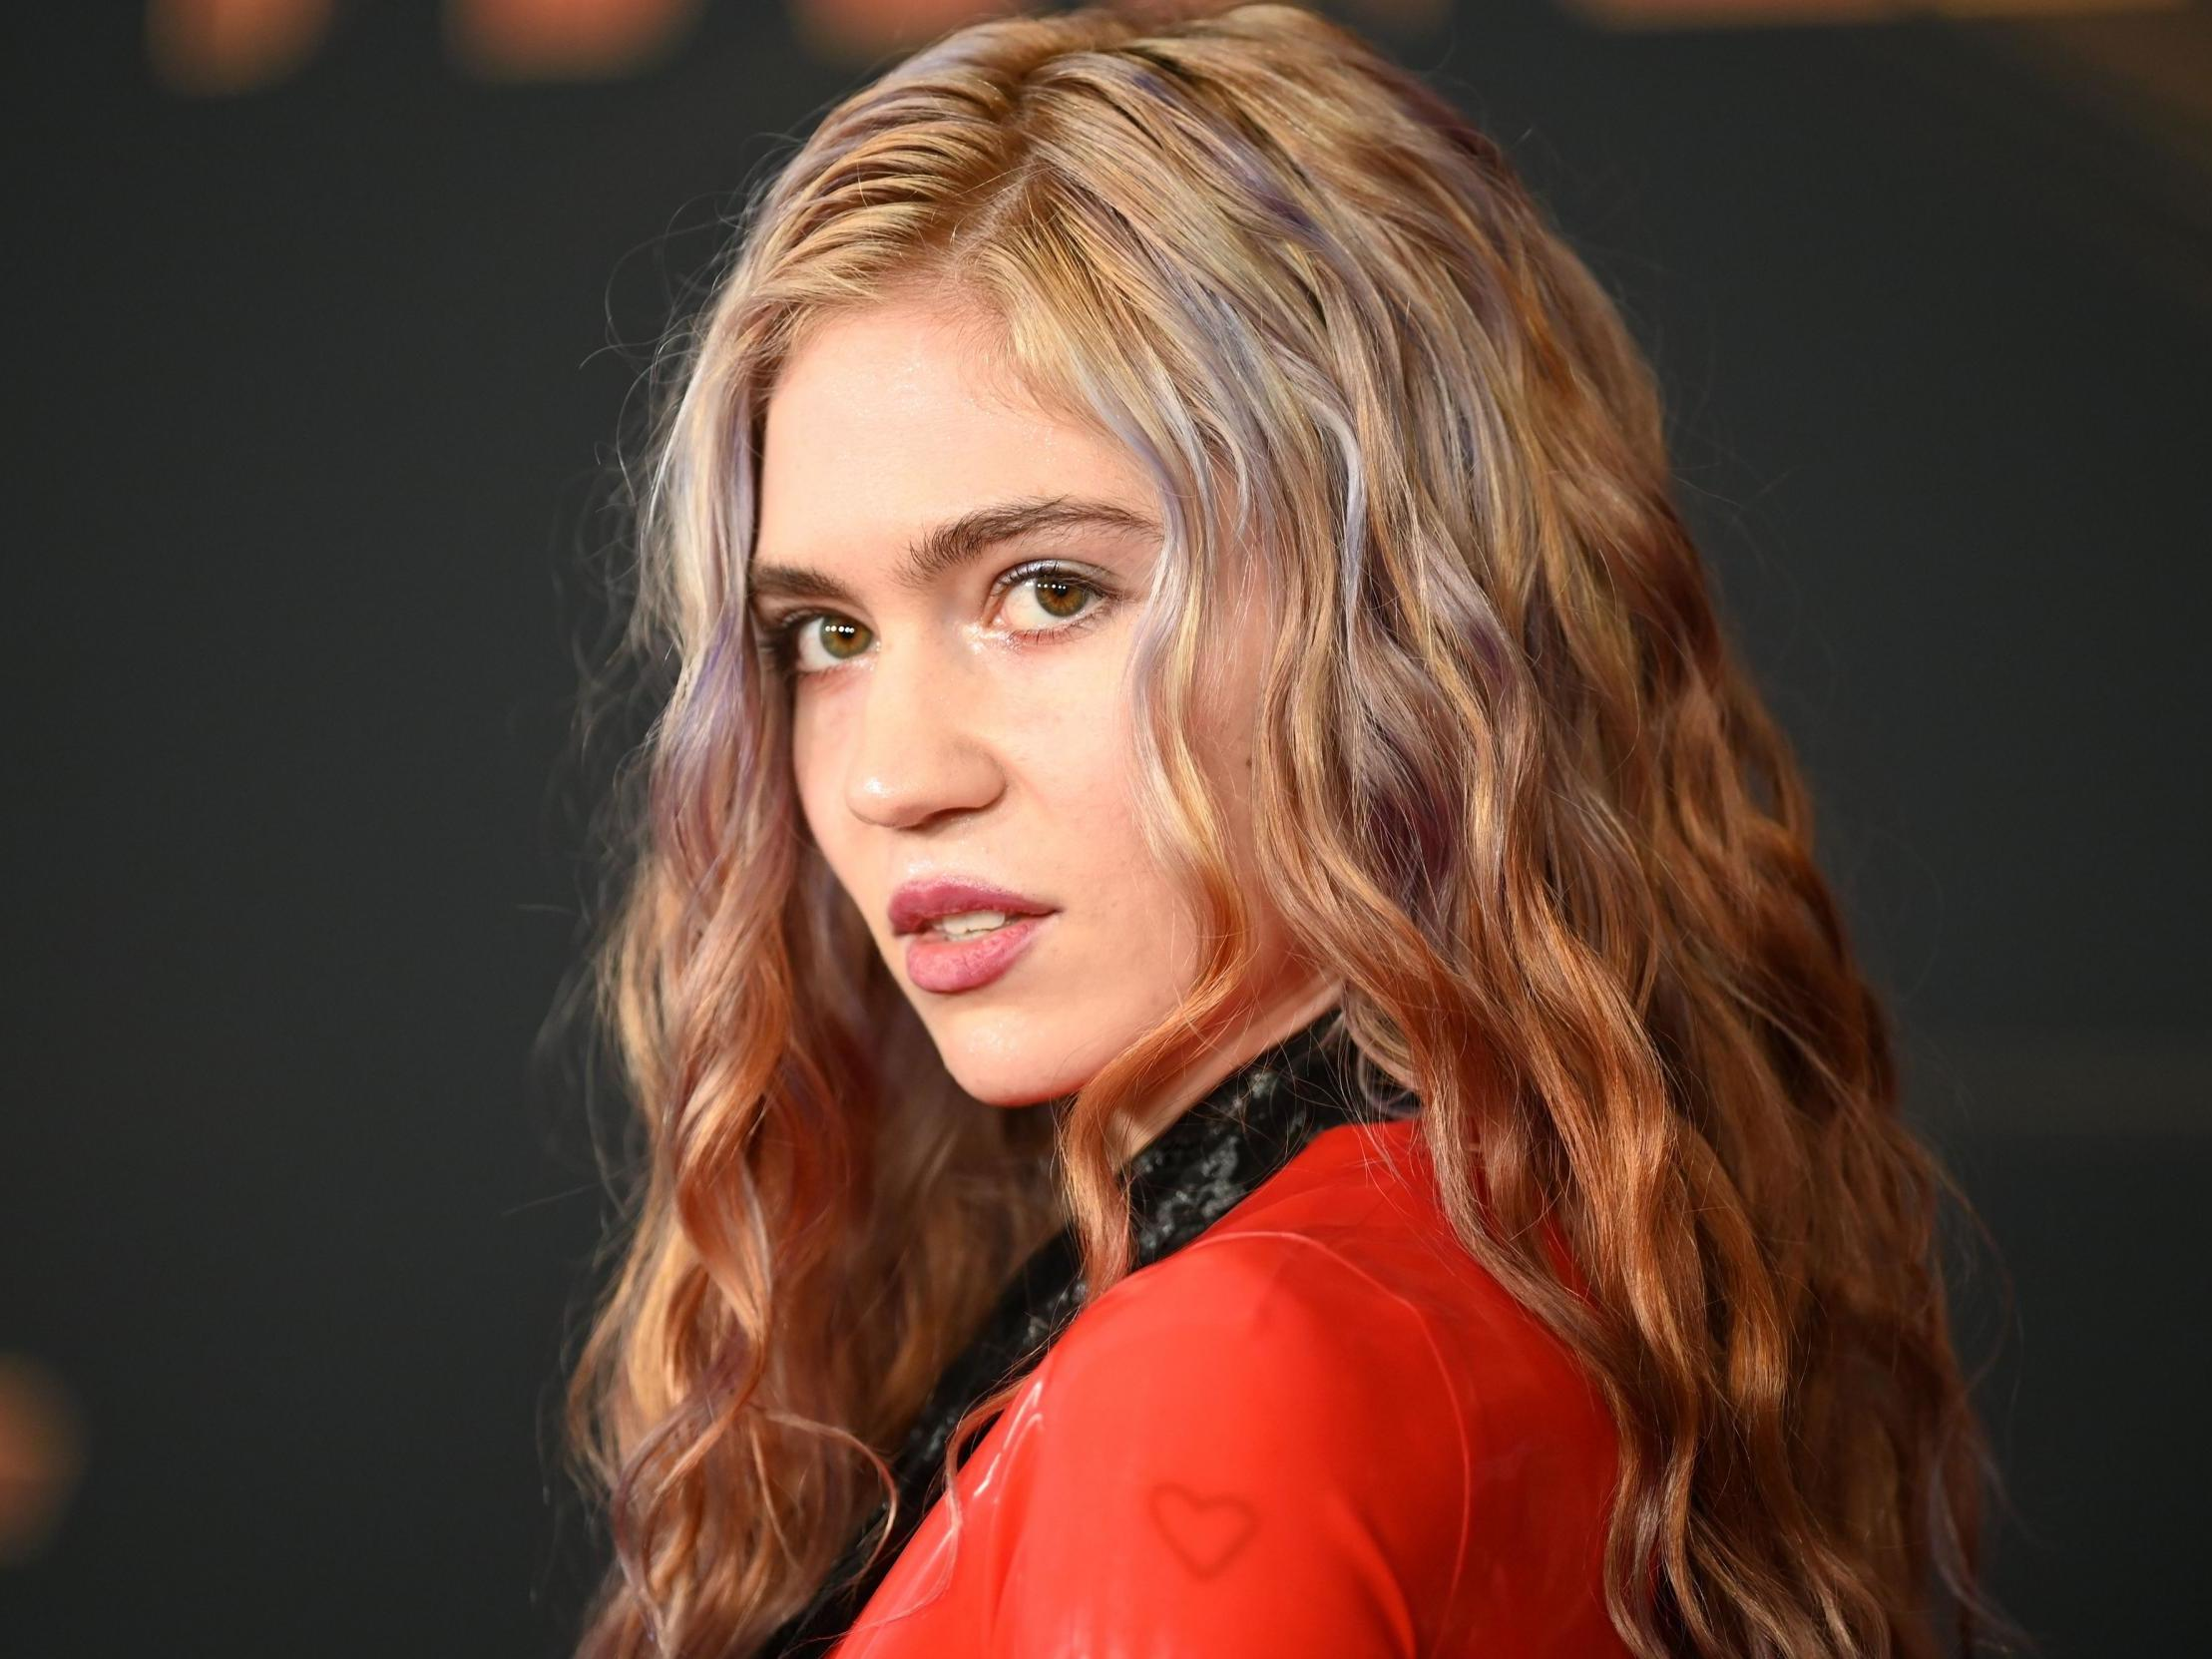 Grimes selling 'piece of her soul' in online art exhibition